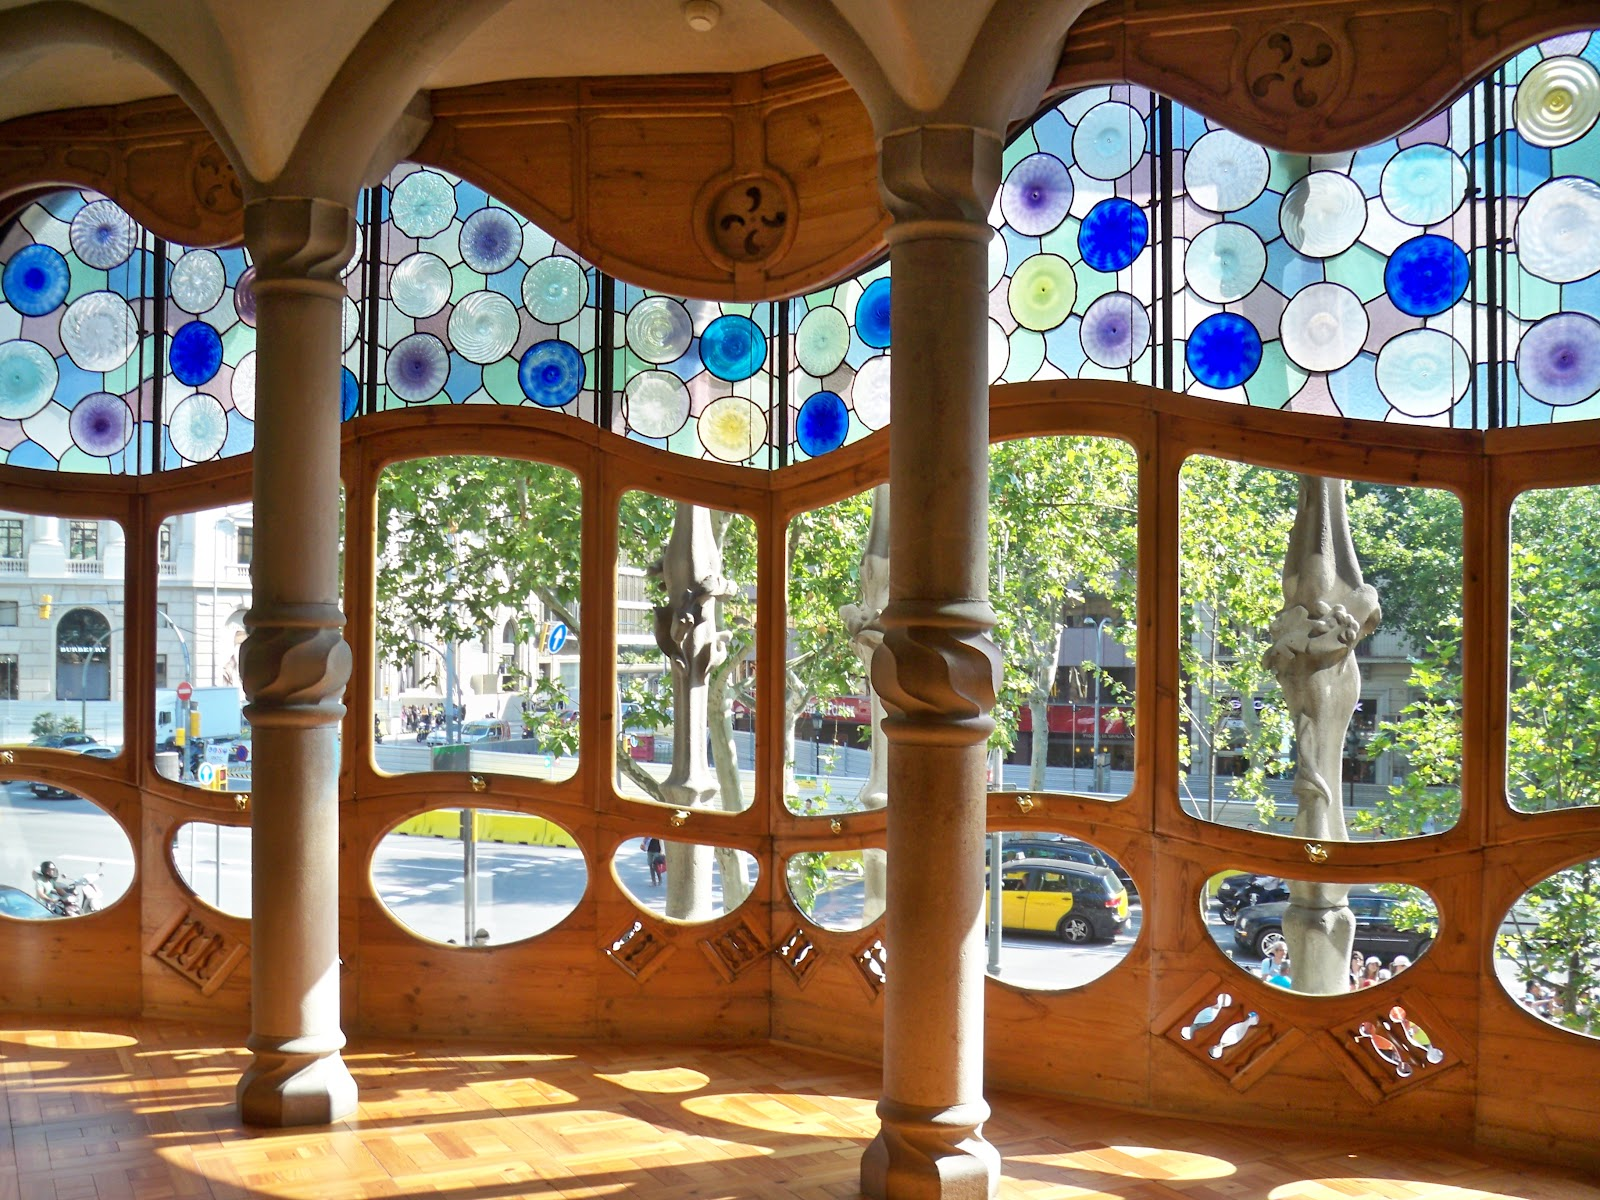 Hola from Barcelona!: Inside the Casa Batlló